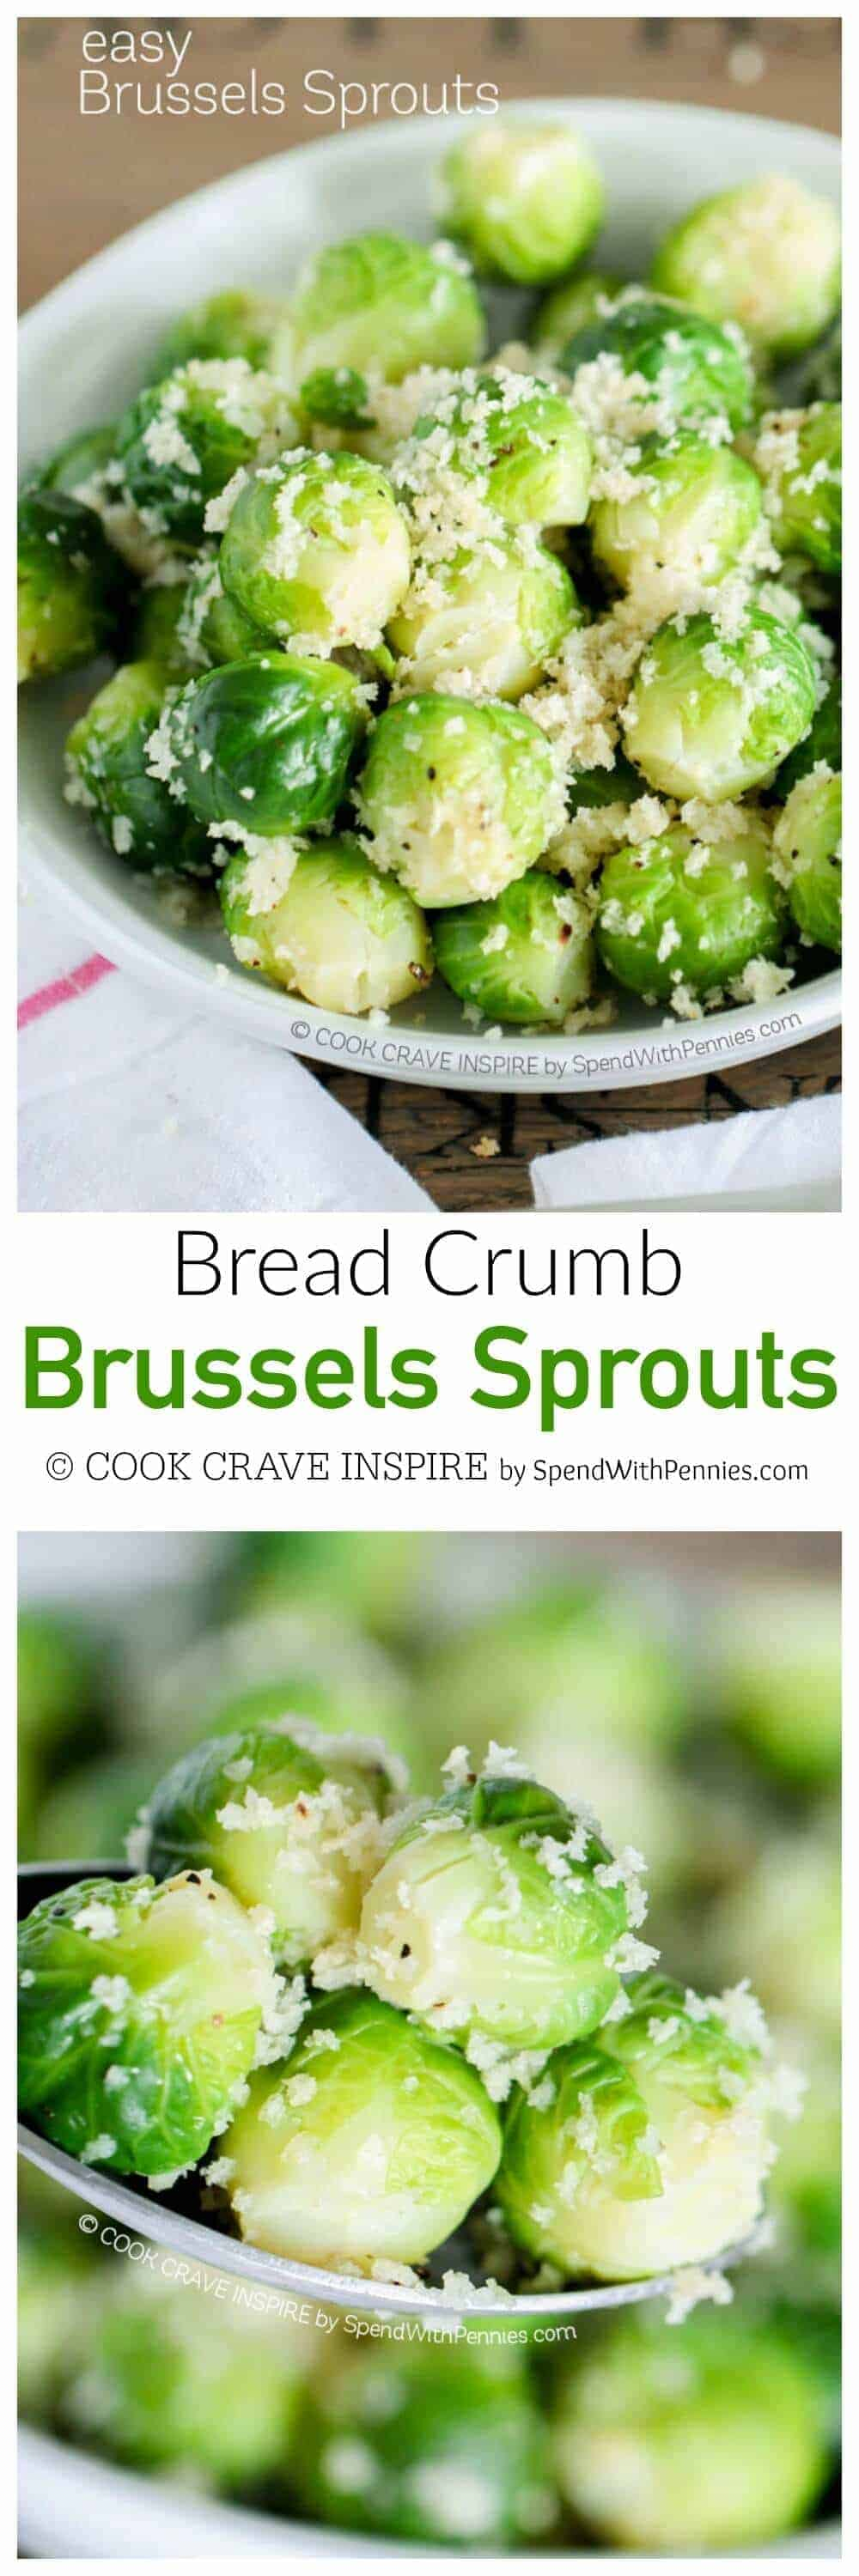 bread crumb brussel sprouts with a title